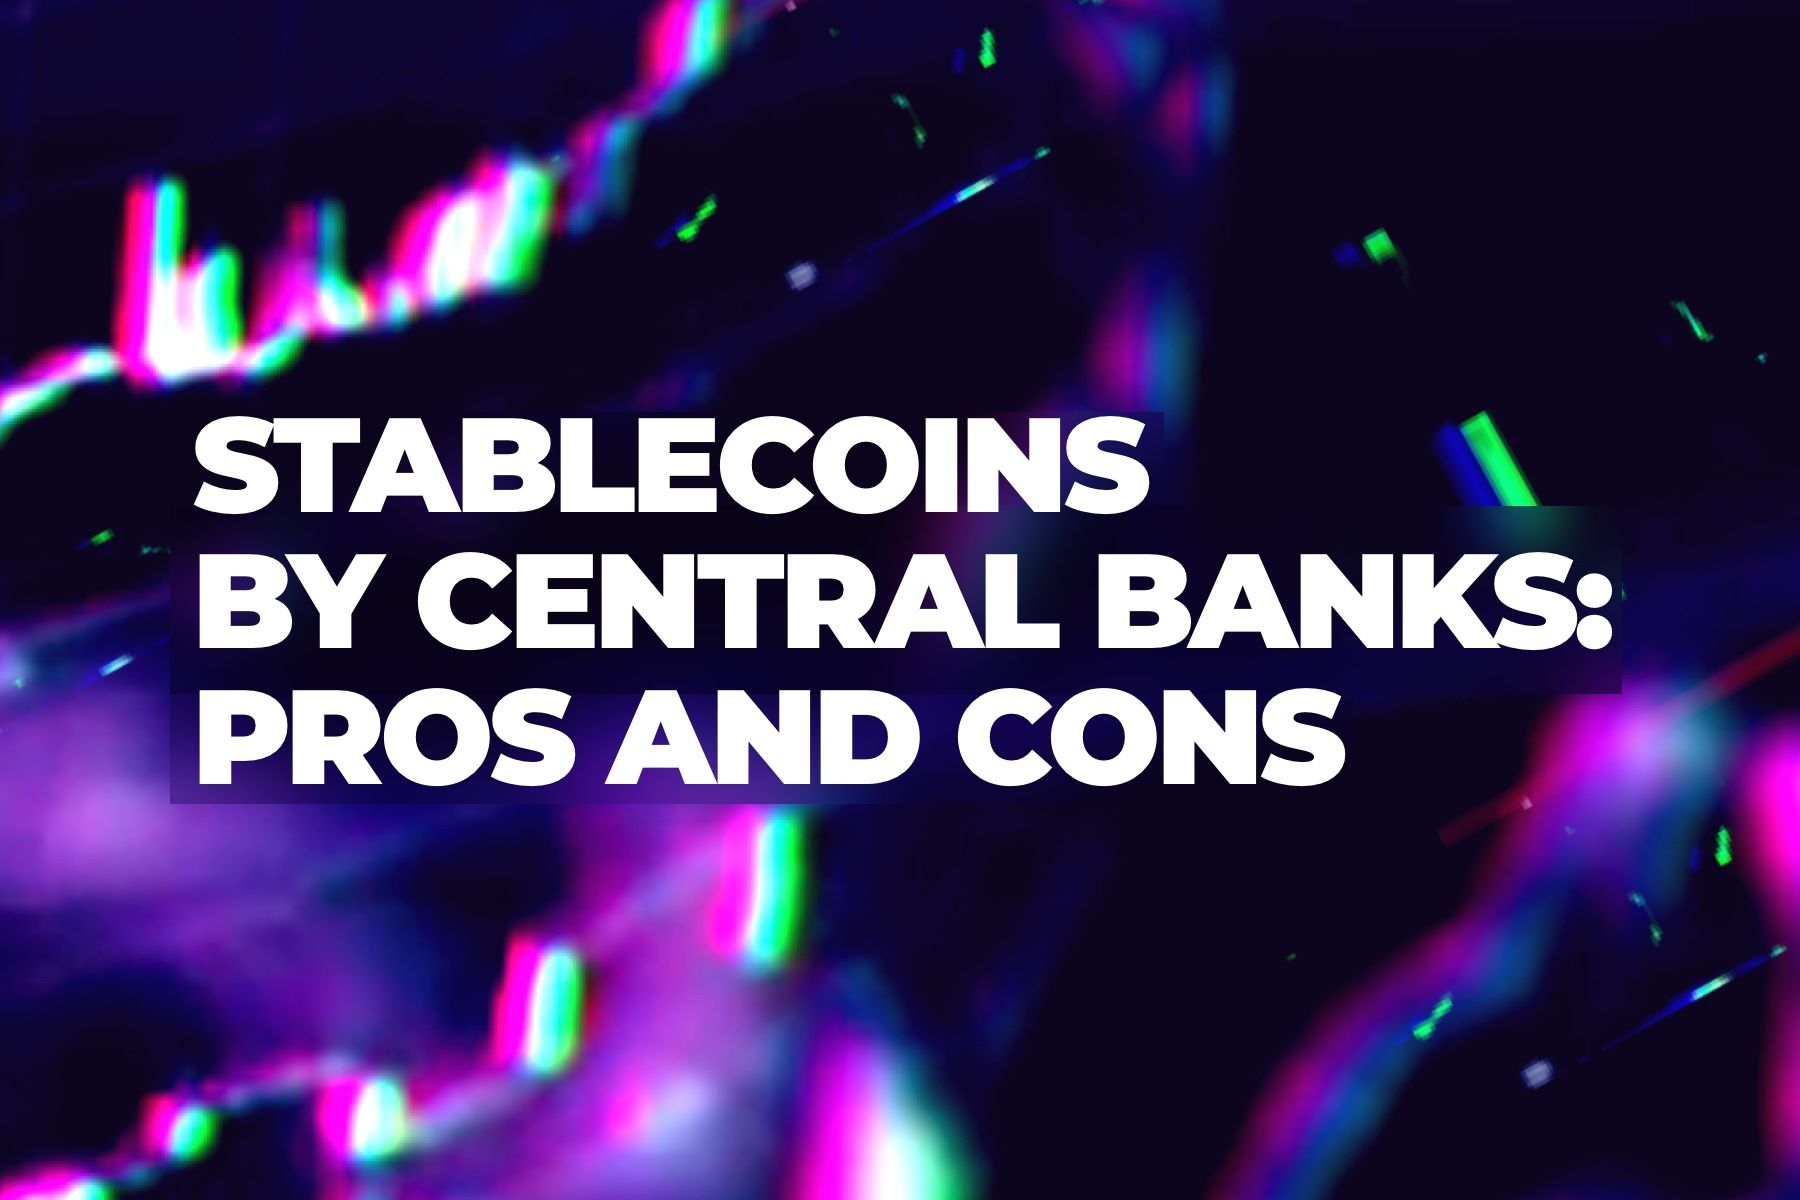 Stablecoins by central banks: expect control and faster transactions, analysts say